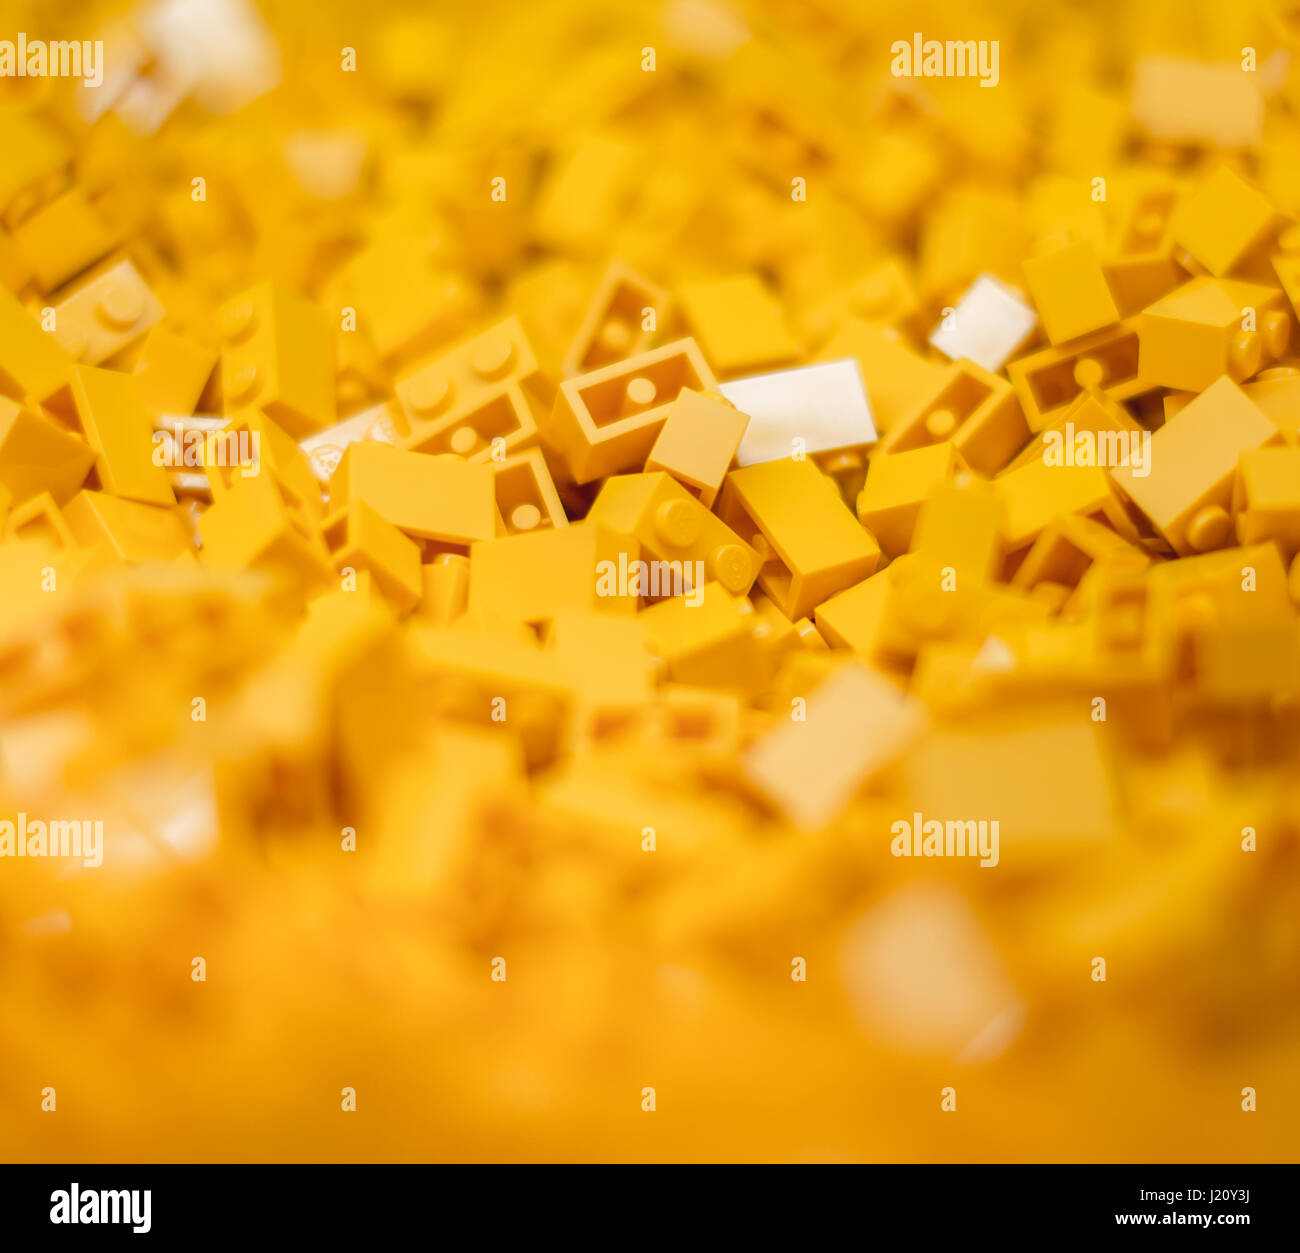 yellow Leggo two blocks in a pile about to be shaped into a new magnificent structure by young minds to amaze wondering - Stock Image